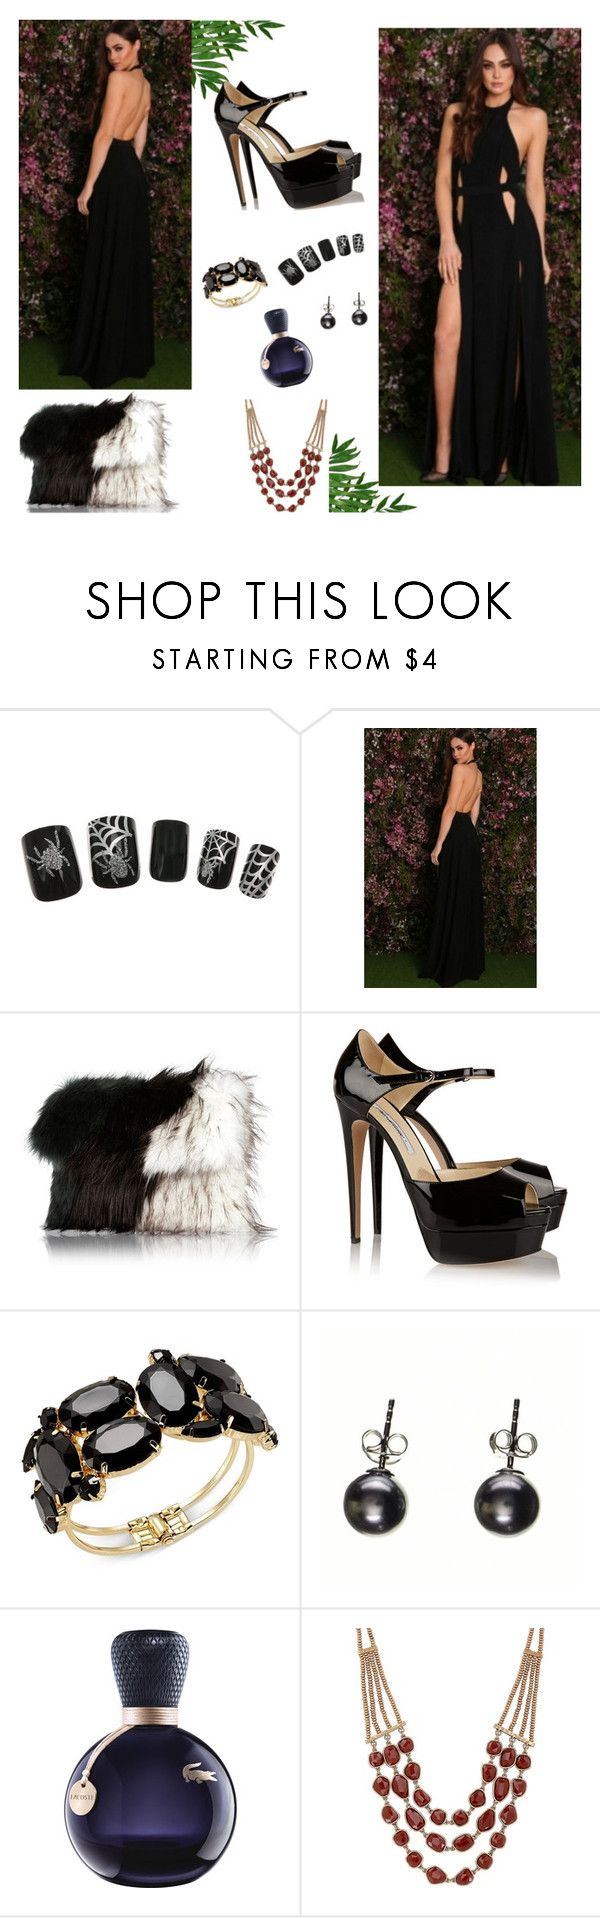 """Elegant Jersey Maxi"" by rachel1992 ❤ liked on Polyvore featuring River Island, Brian Atwood, Thalia Sodi, Lacoste and Lucky Brand"